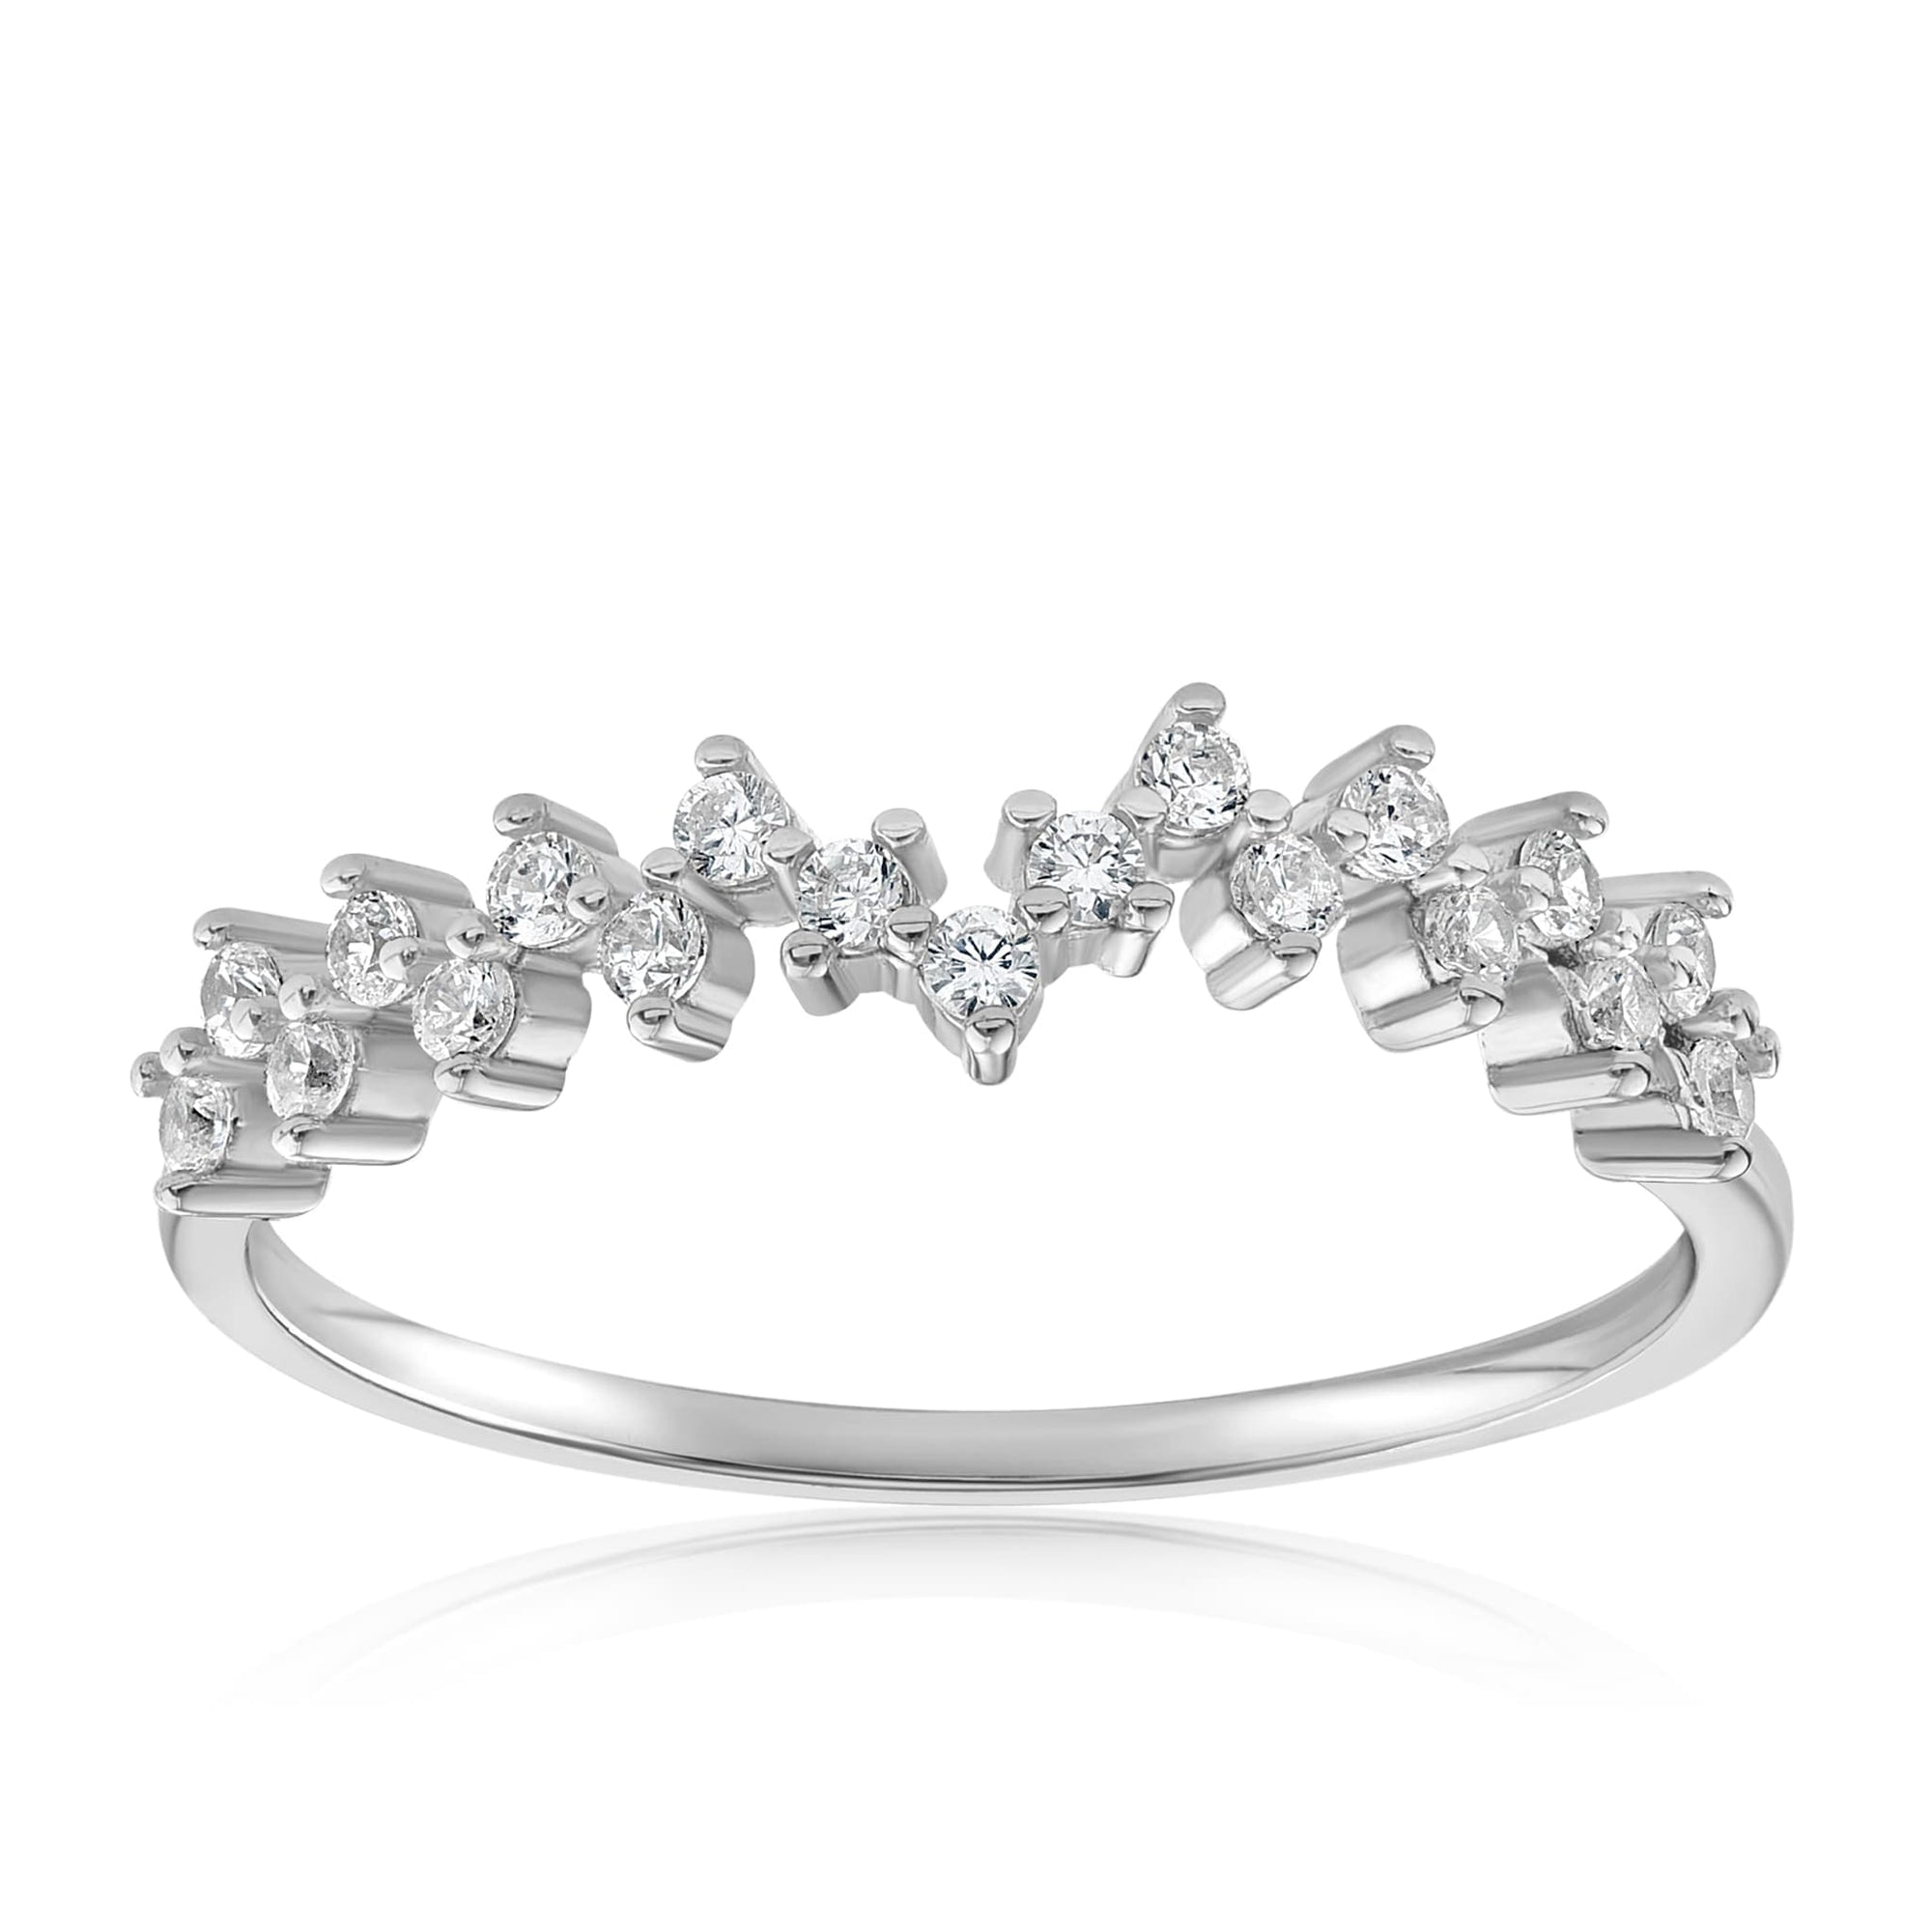 Esther Petite Cluster Ring - Front View Facing Up - 925 Sterling Silver